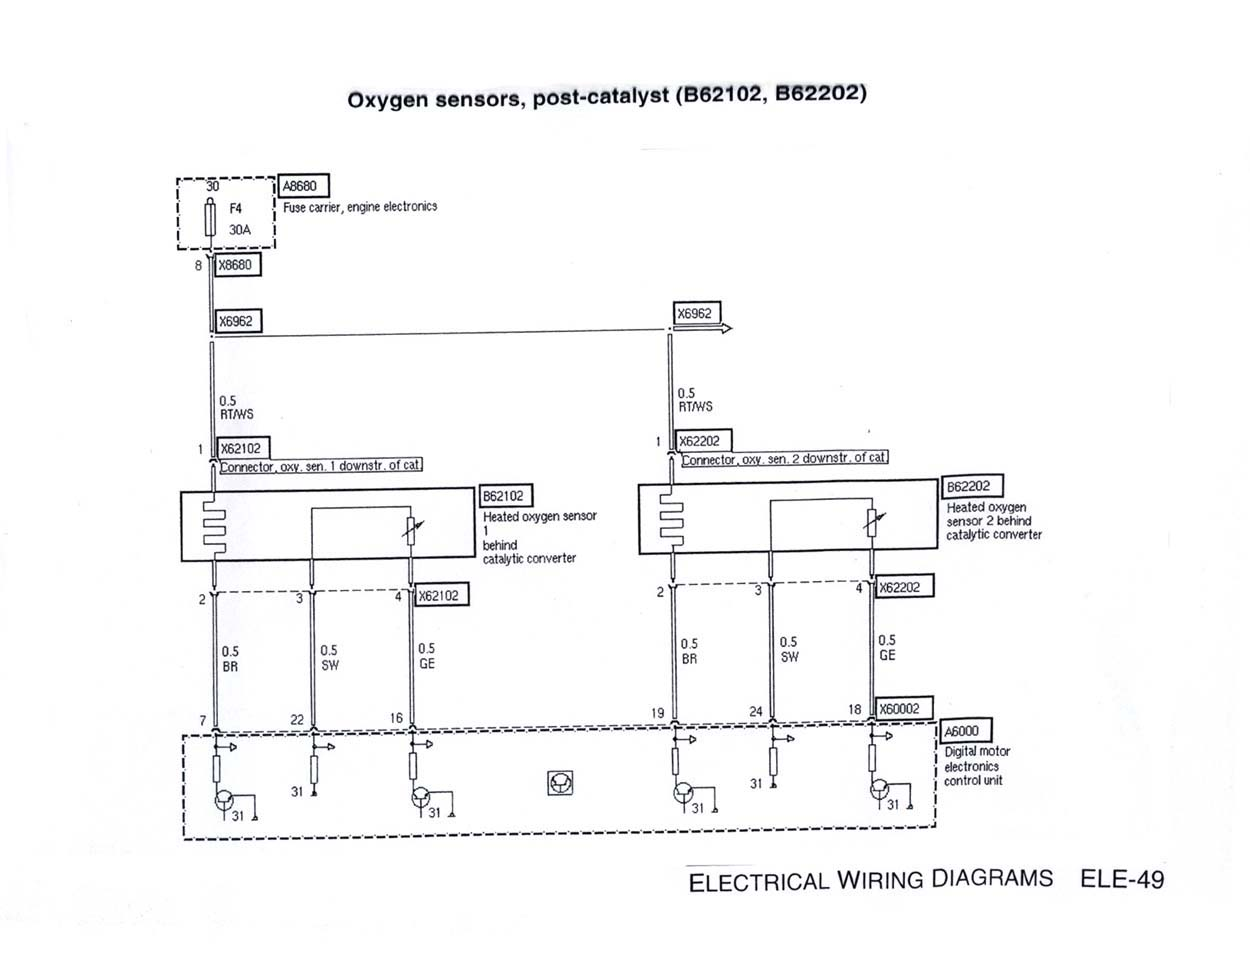 e46 m3 wiring diagram single phase fan motor with capacitor o2 sensor  diagrams